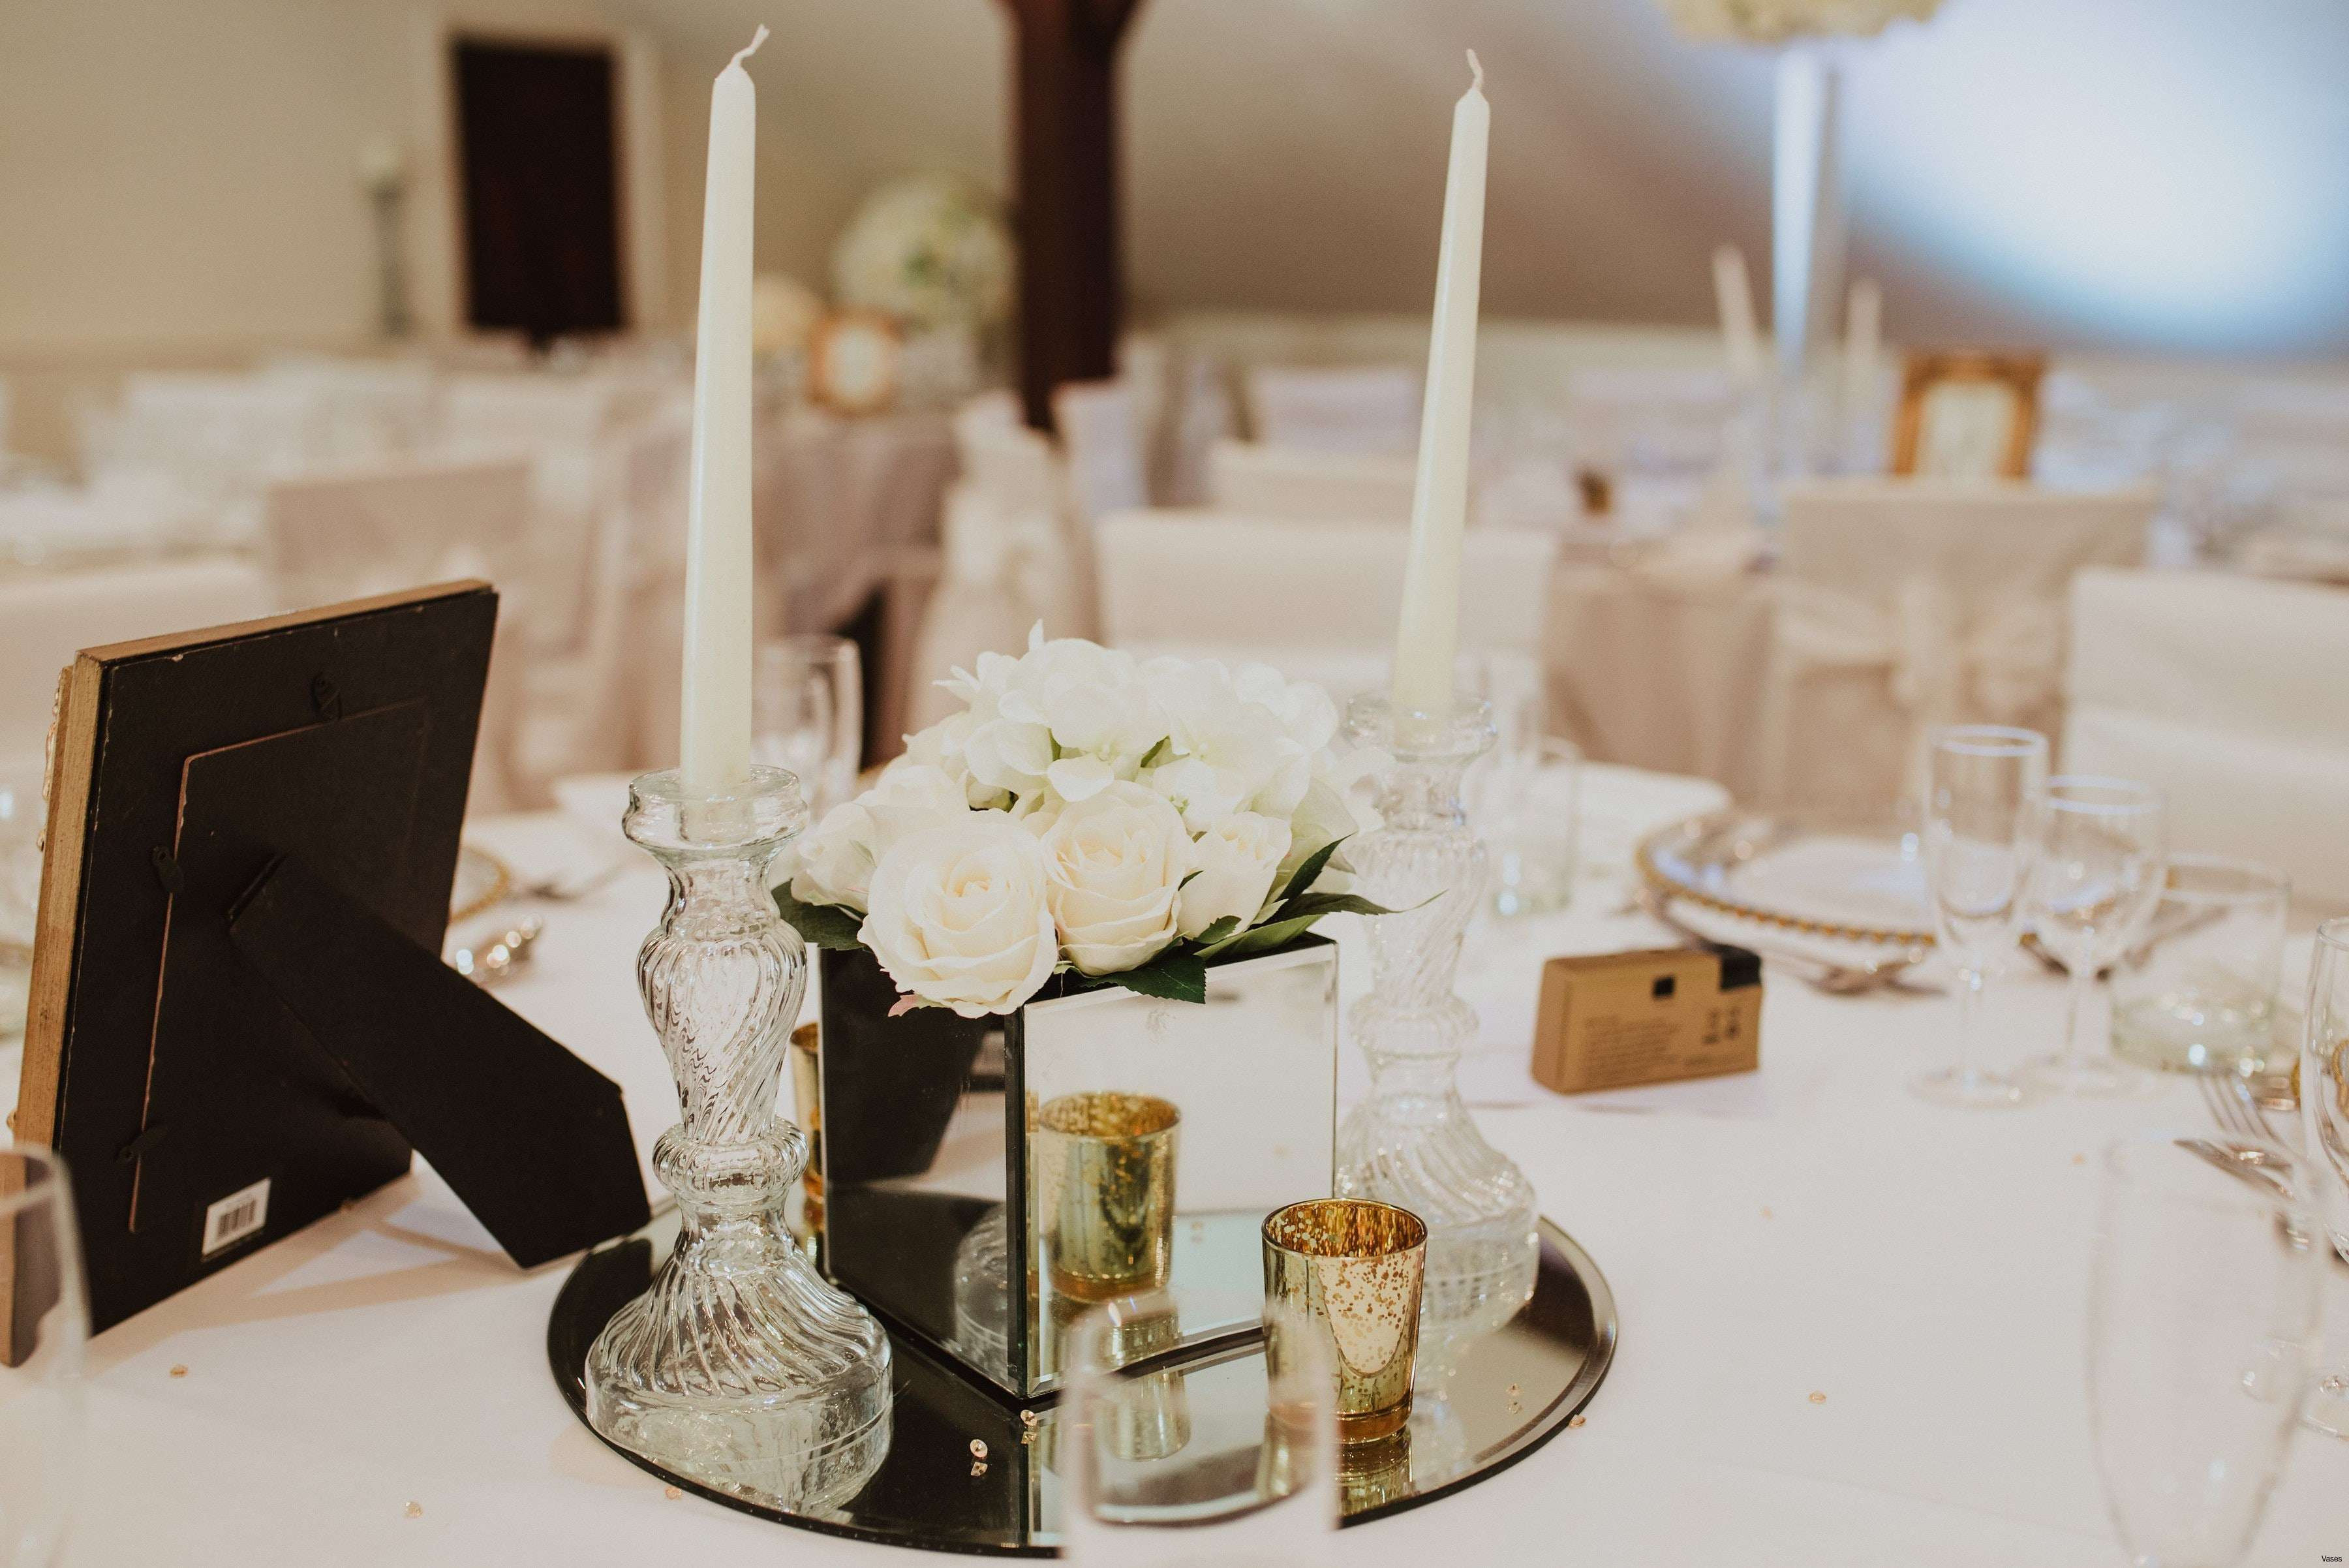 10 Awesome Rehearsal Dinner Table Decorations Ideas banquet table decorating ideas elegant wedding rehearsal dinner 2020